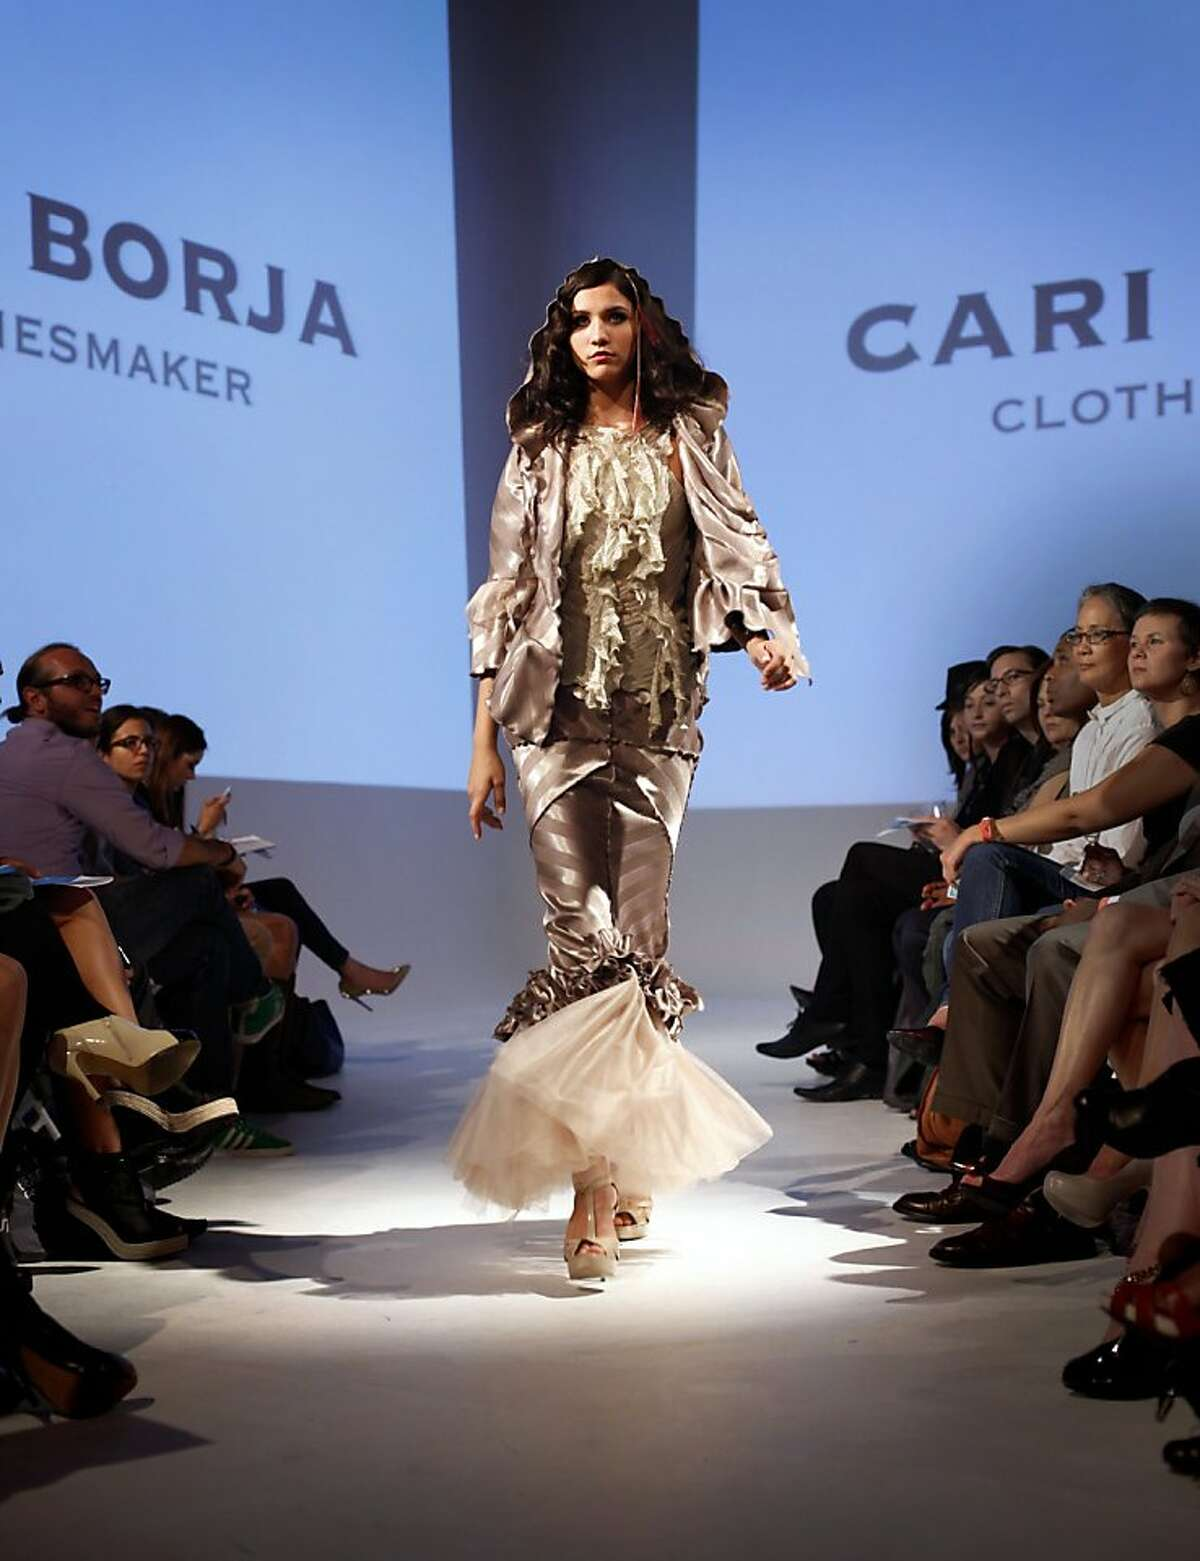 Cari Borja's new collection is shown in a group runway fashion show in San Francisco, Calif., Thursday, September 29, 2011. Her collection is inspired by her time as an intern at Chez Panisse.